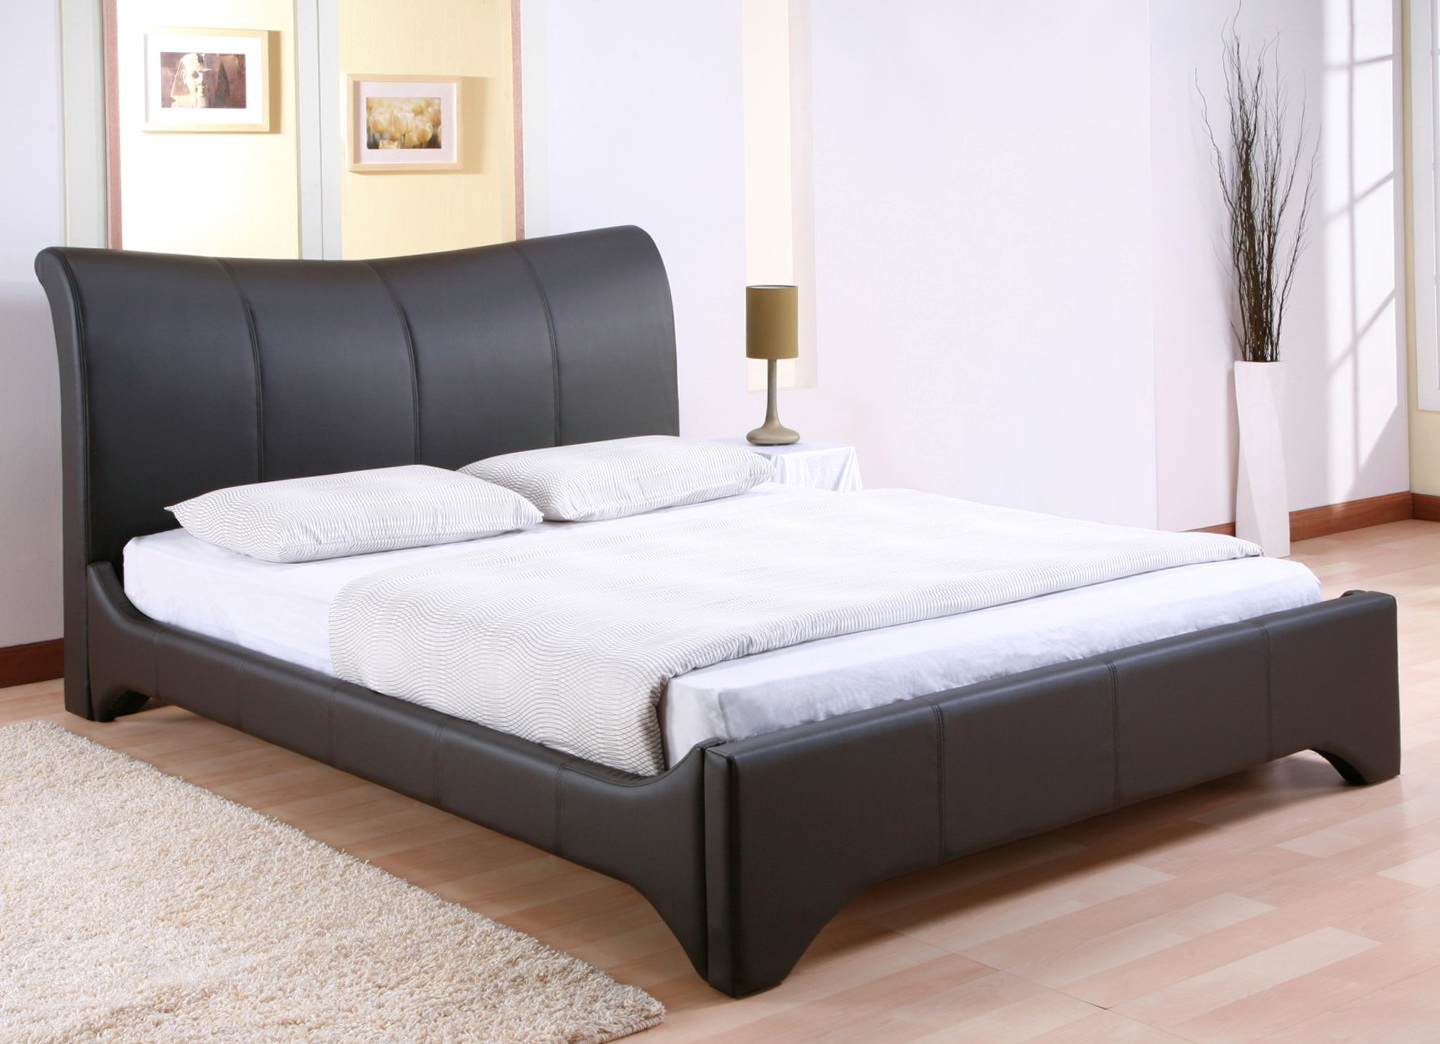 Queen Bed Dimensions In Feet